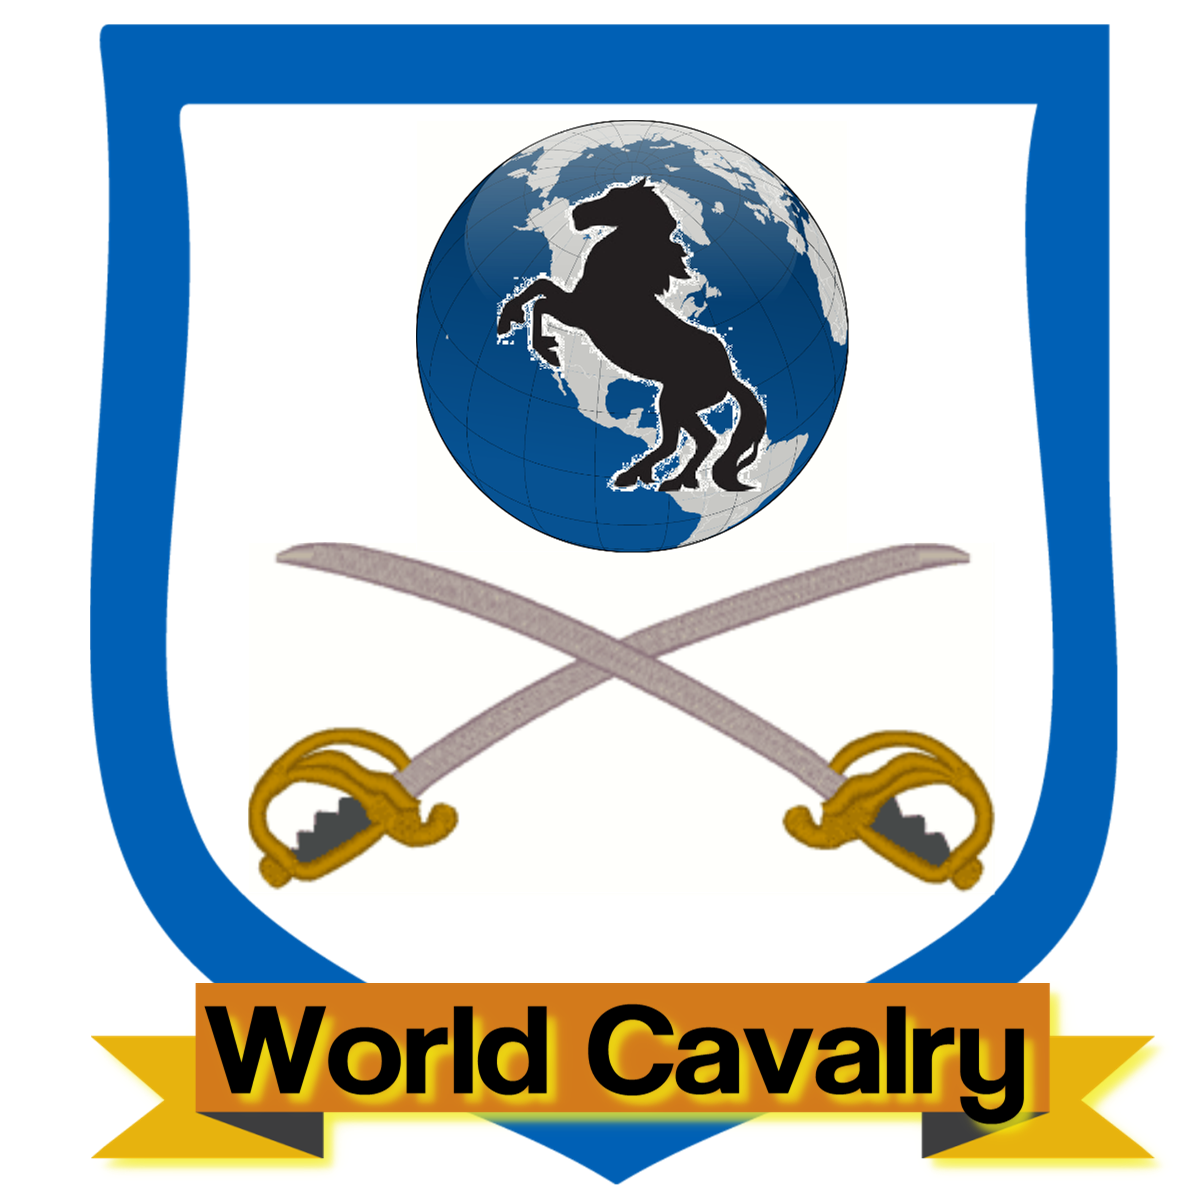 World Cavalry on Facebook